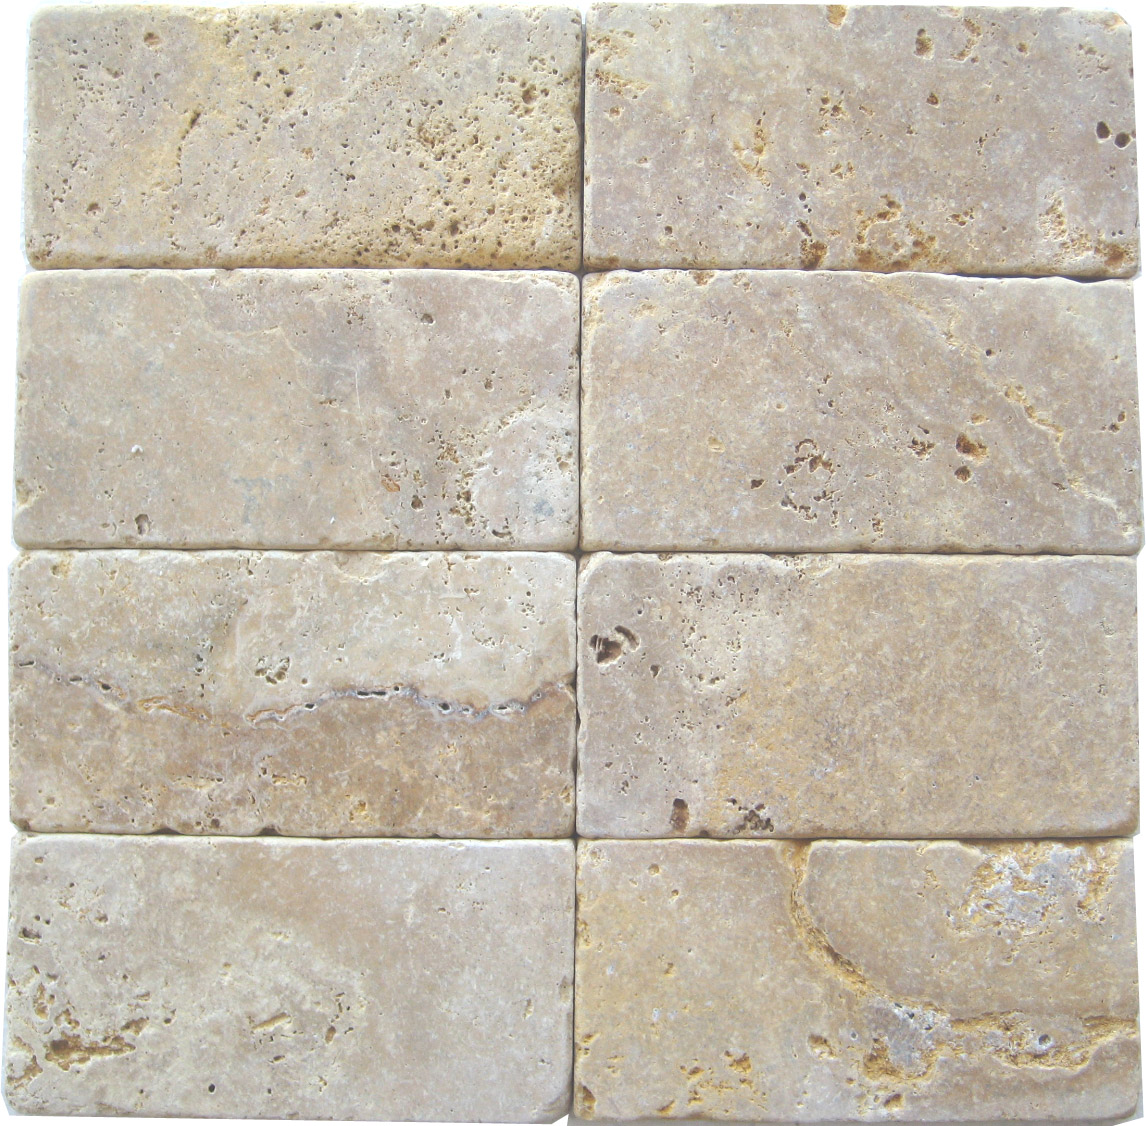 Travertine Countertop Care Golden Sienna Travertine Tumbled Tiles E36 3000 In South